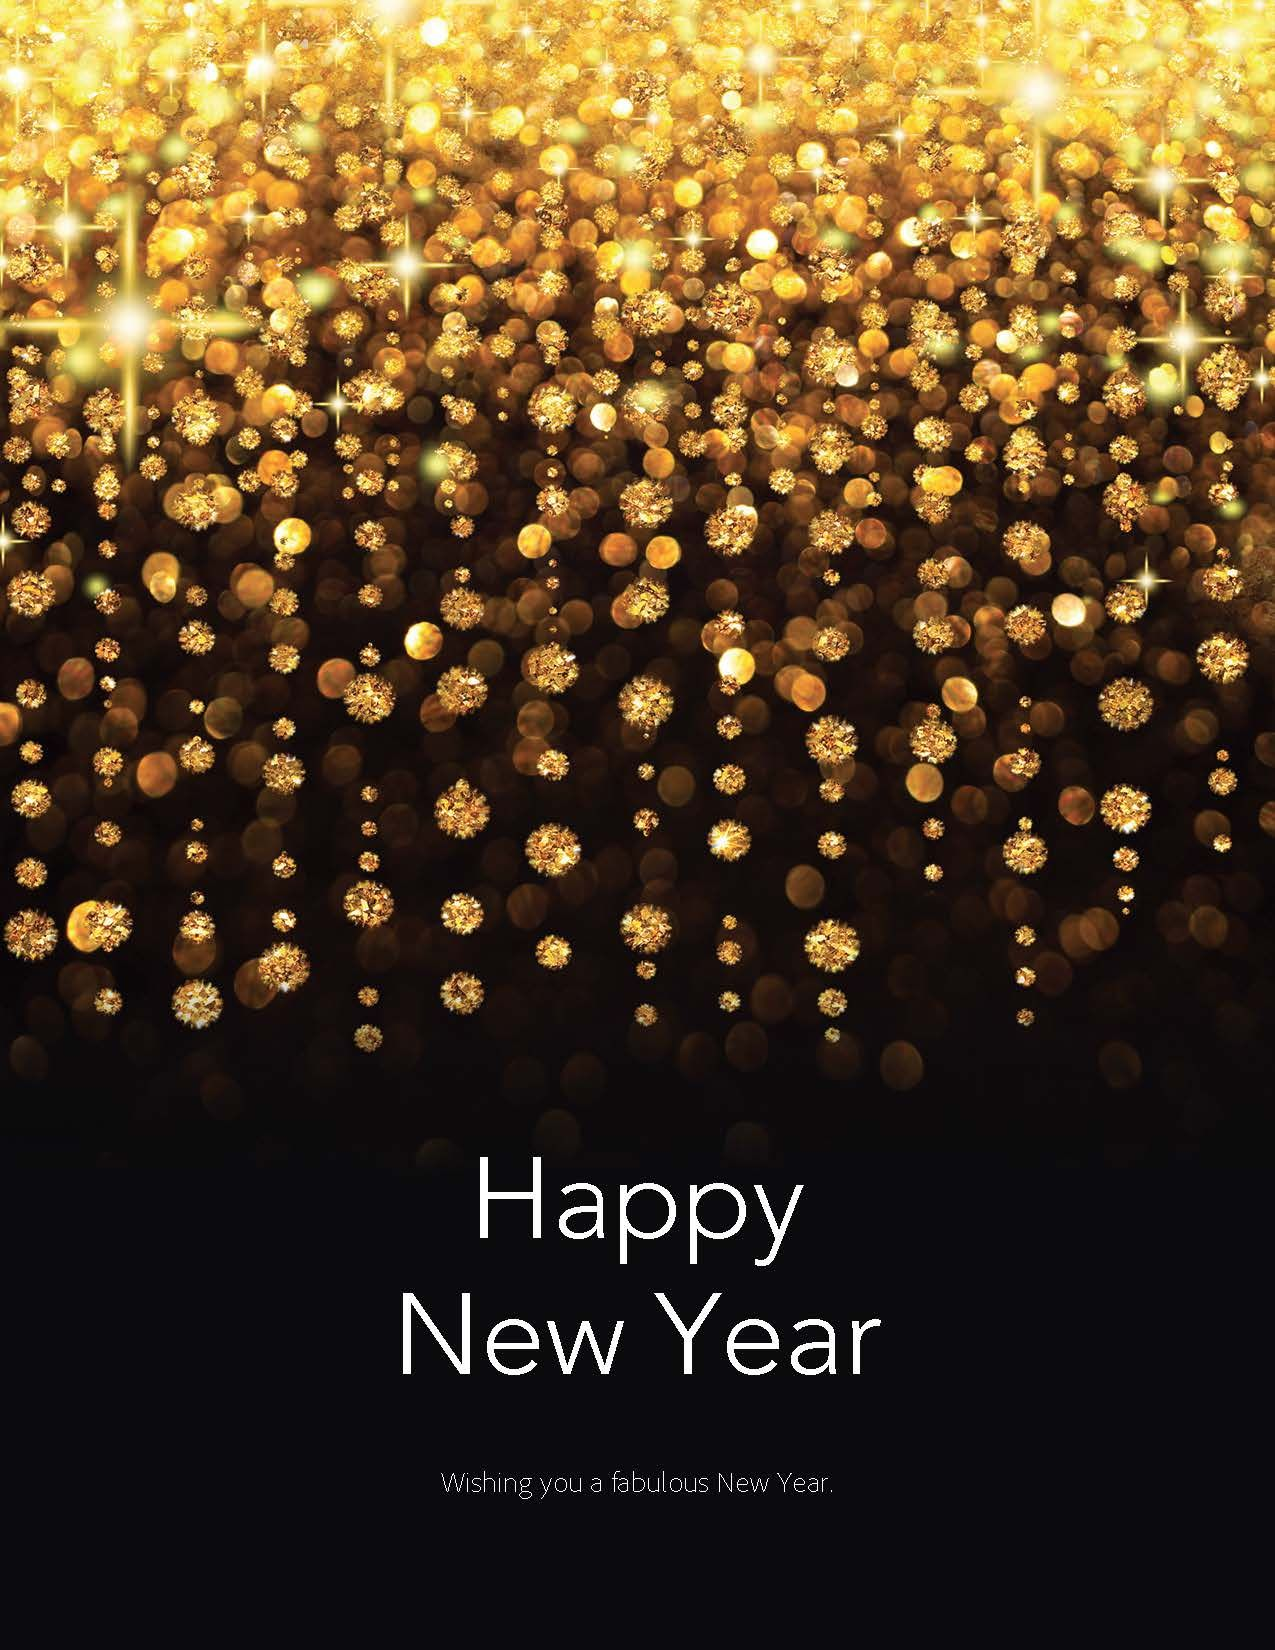 Happy New Year  Gold glitter background, Glitter photography